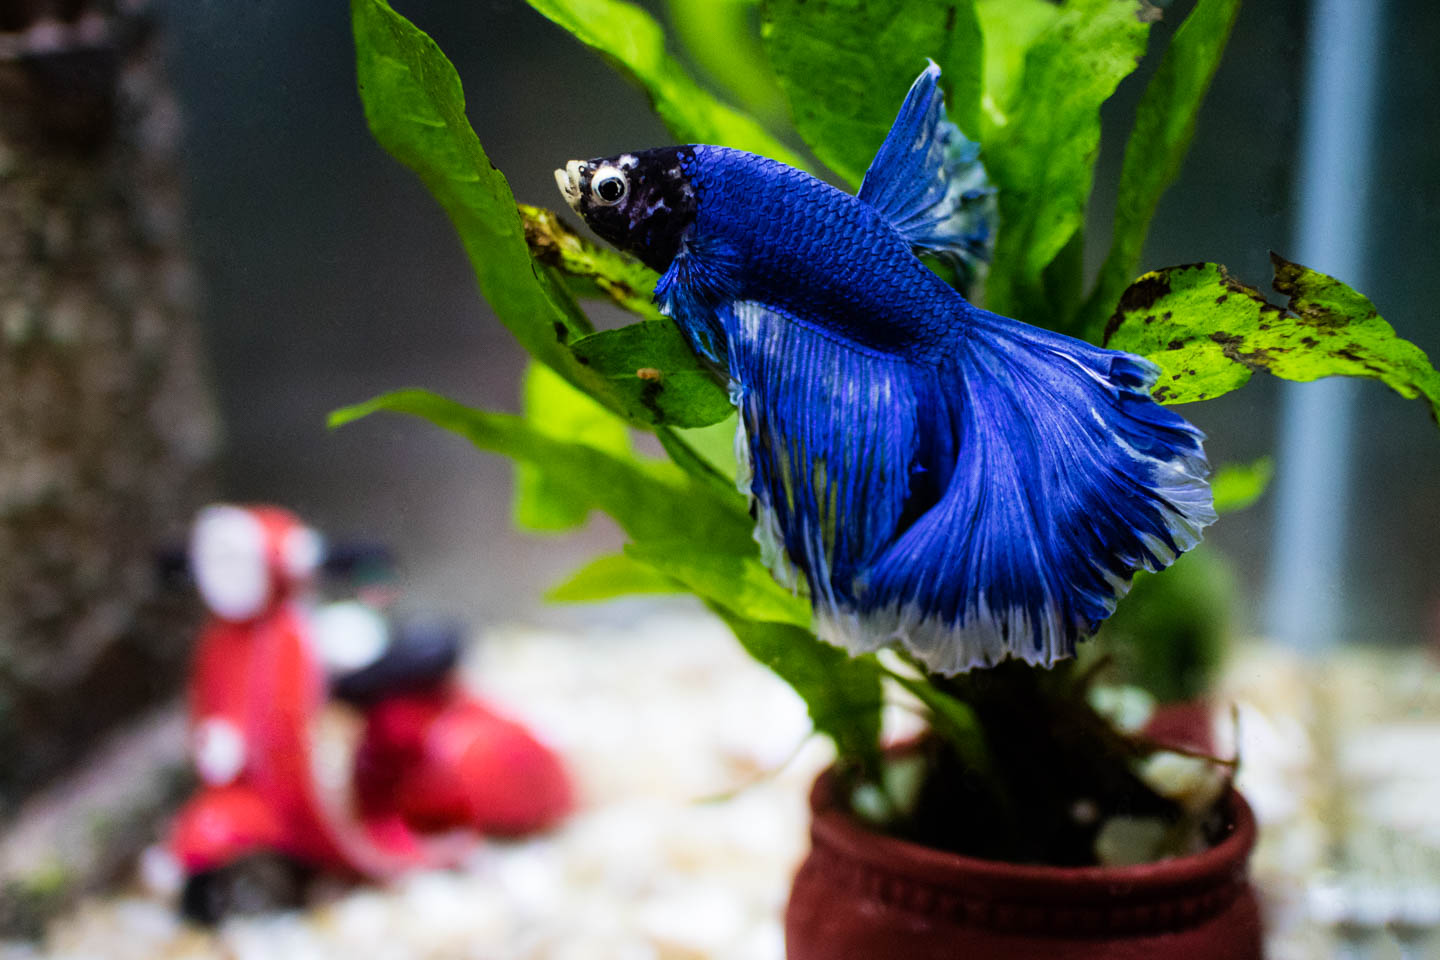 Blue Male Beta Fish named Ciprian